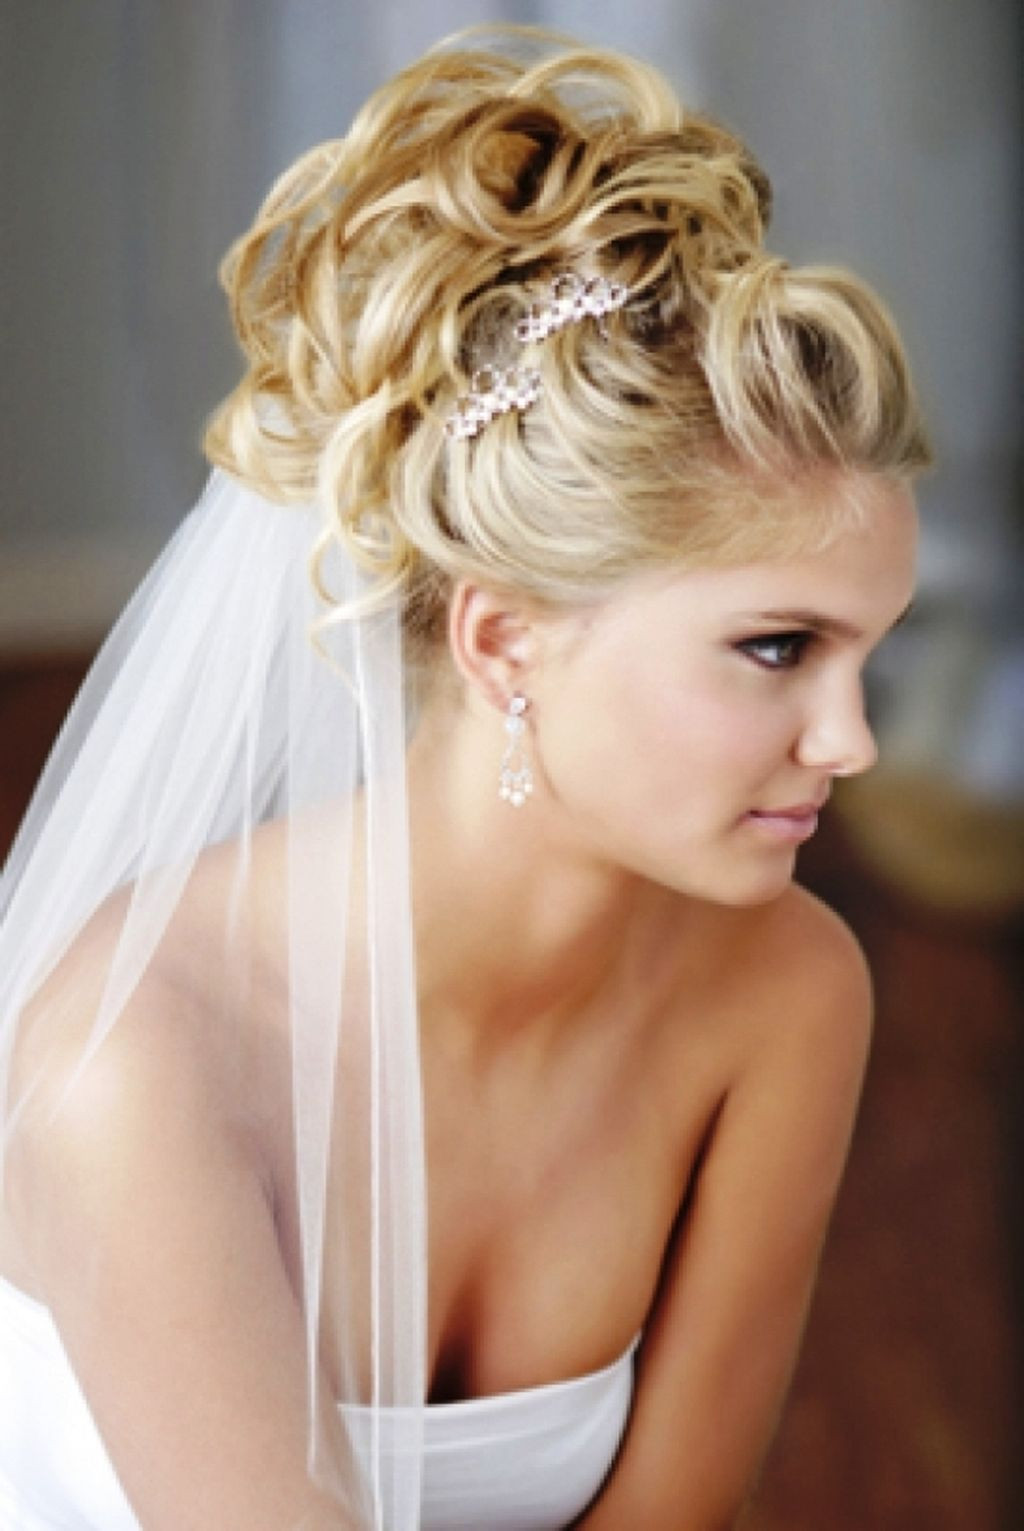 Wedding Veils With Long Hair  20 Wedding Hairstyle Long Hair You Can Do At Home MagMent